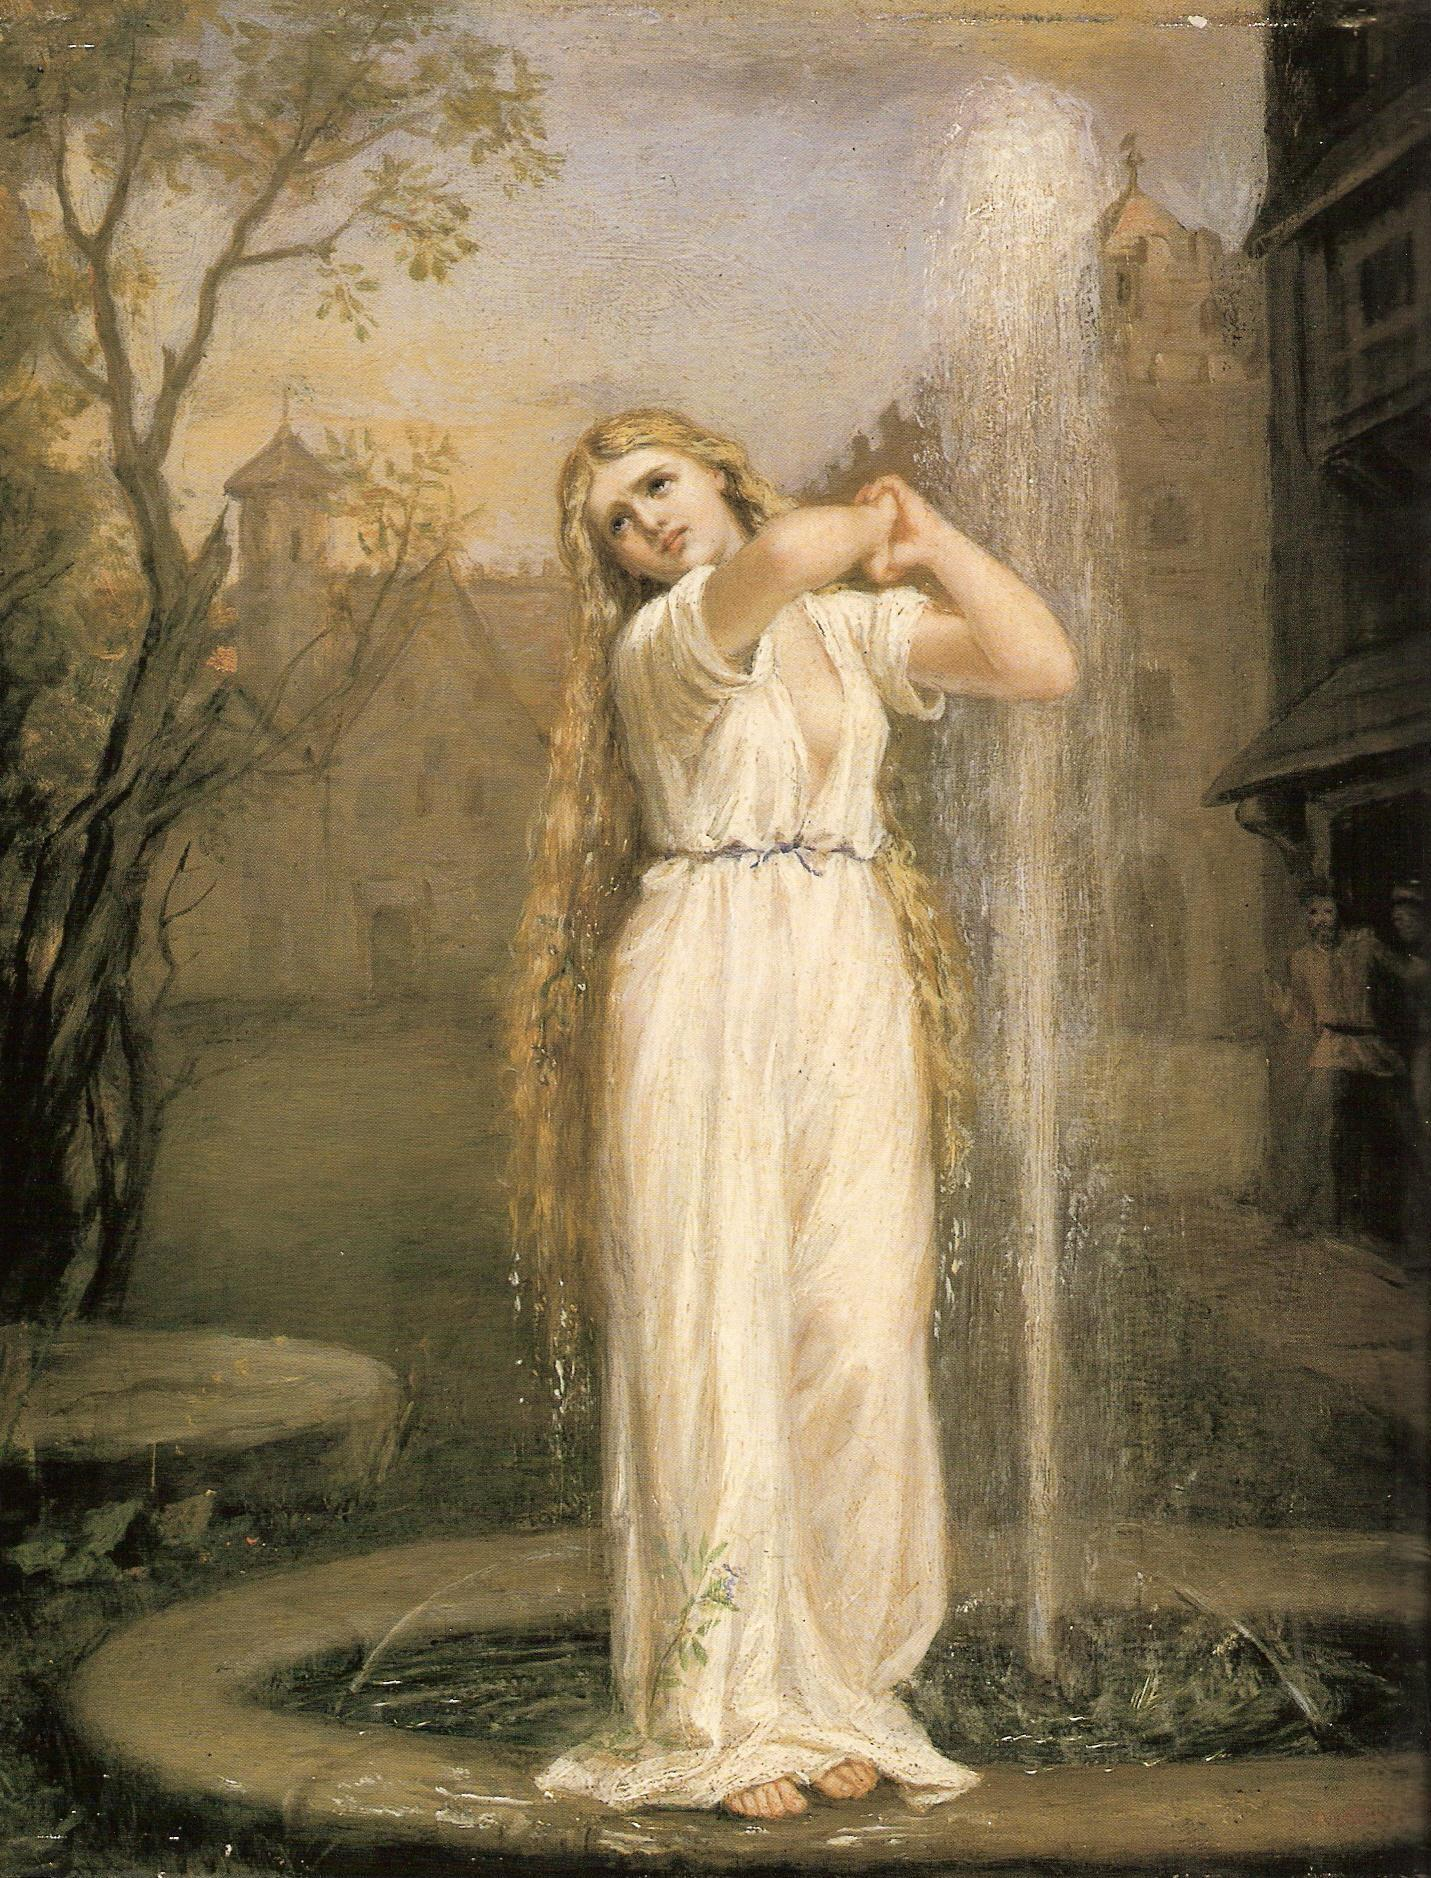 John_William_Waterhouse_-_Undine.JPG